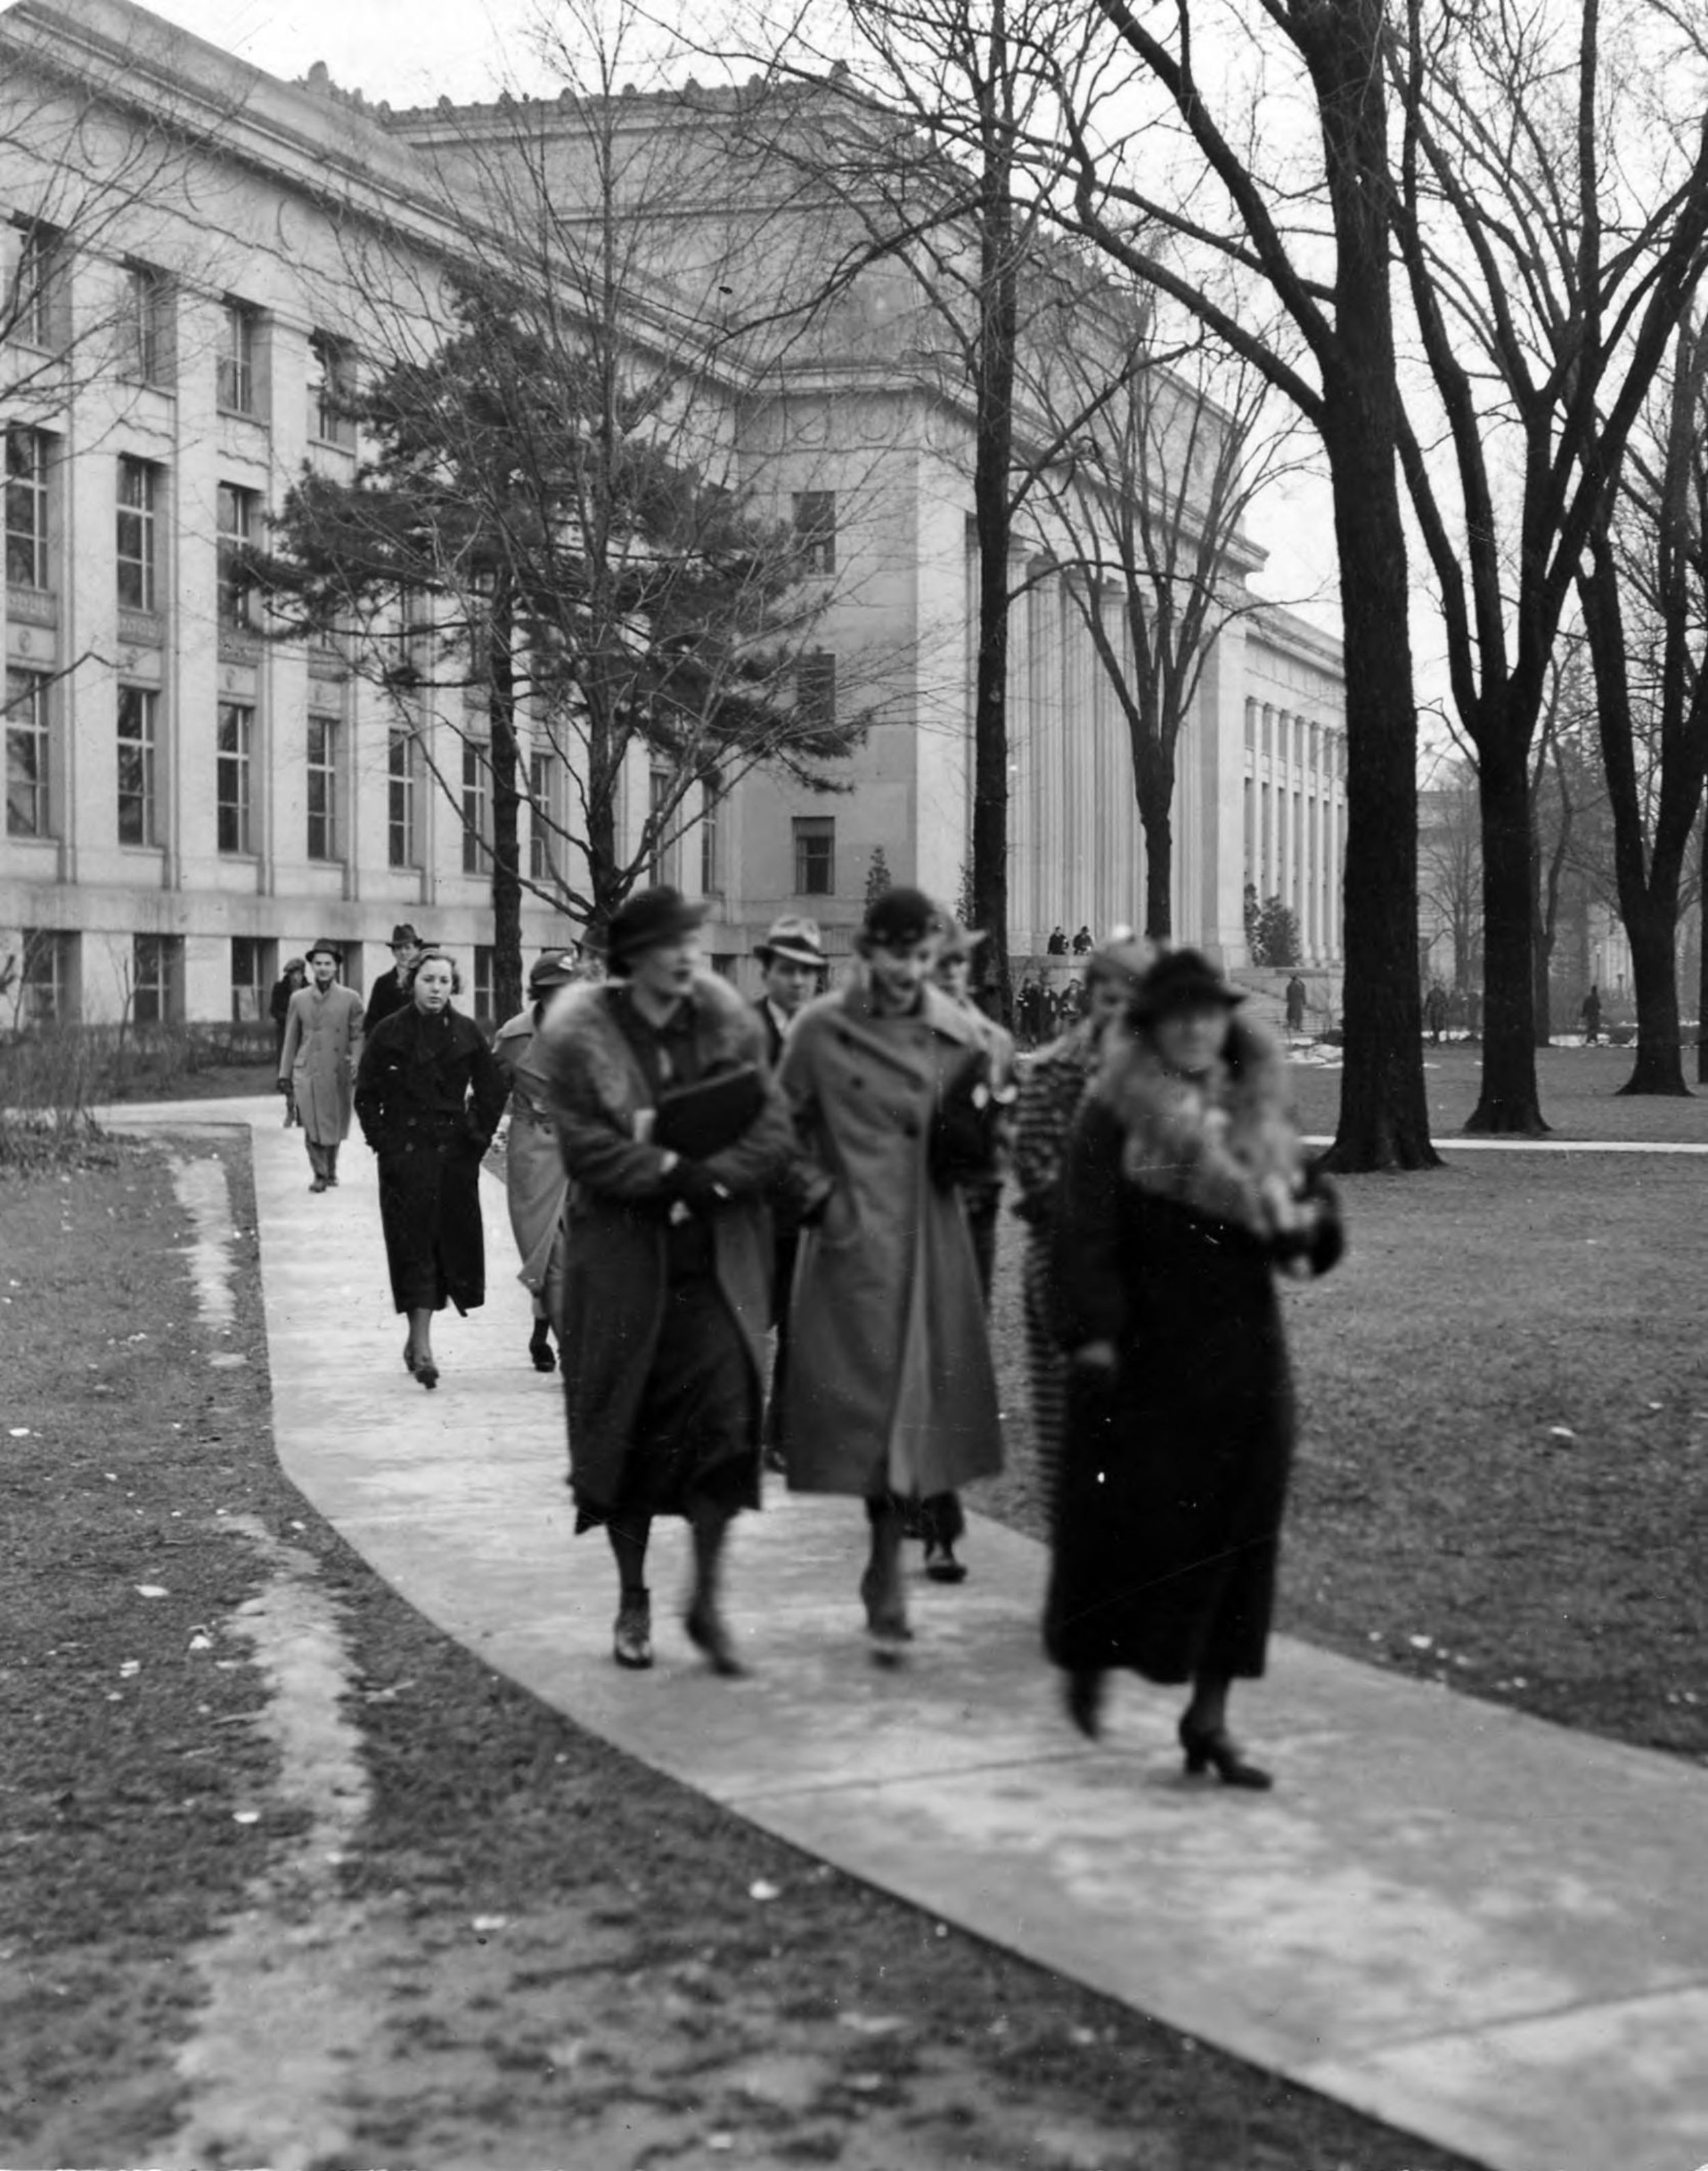 Angell Hall in 1930s